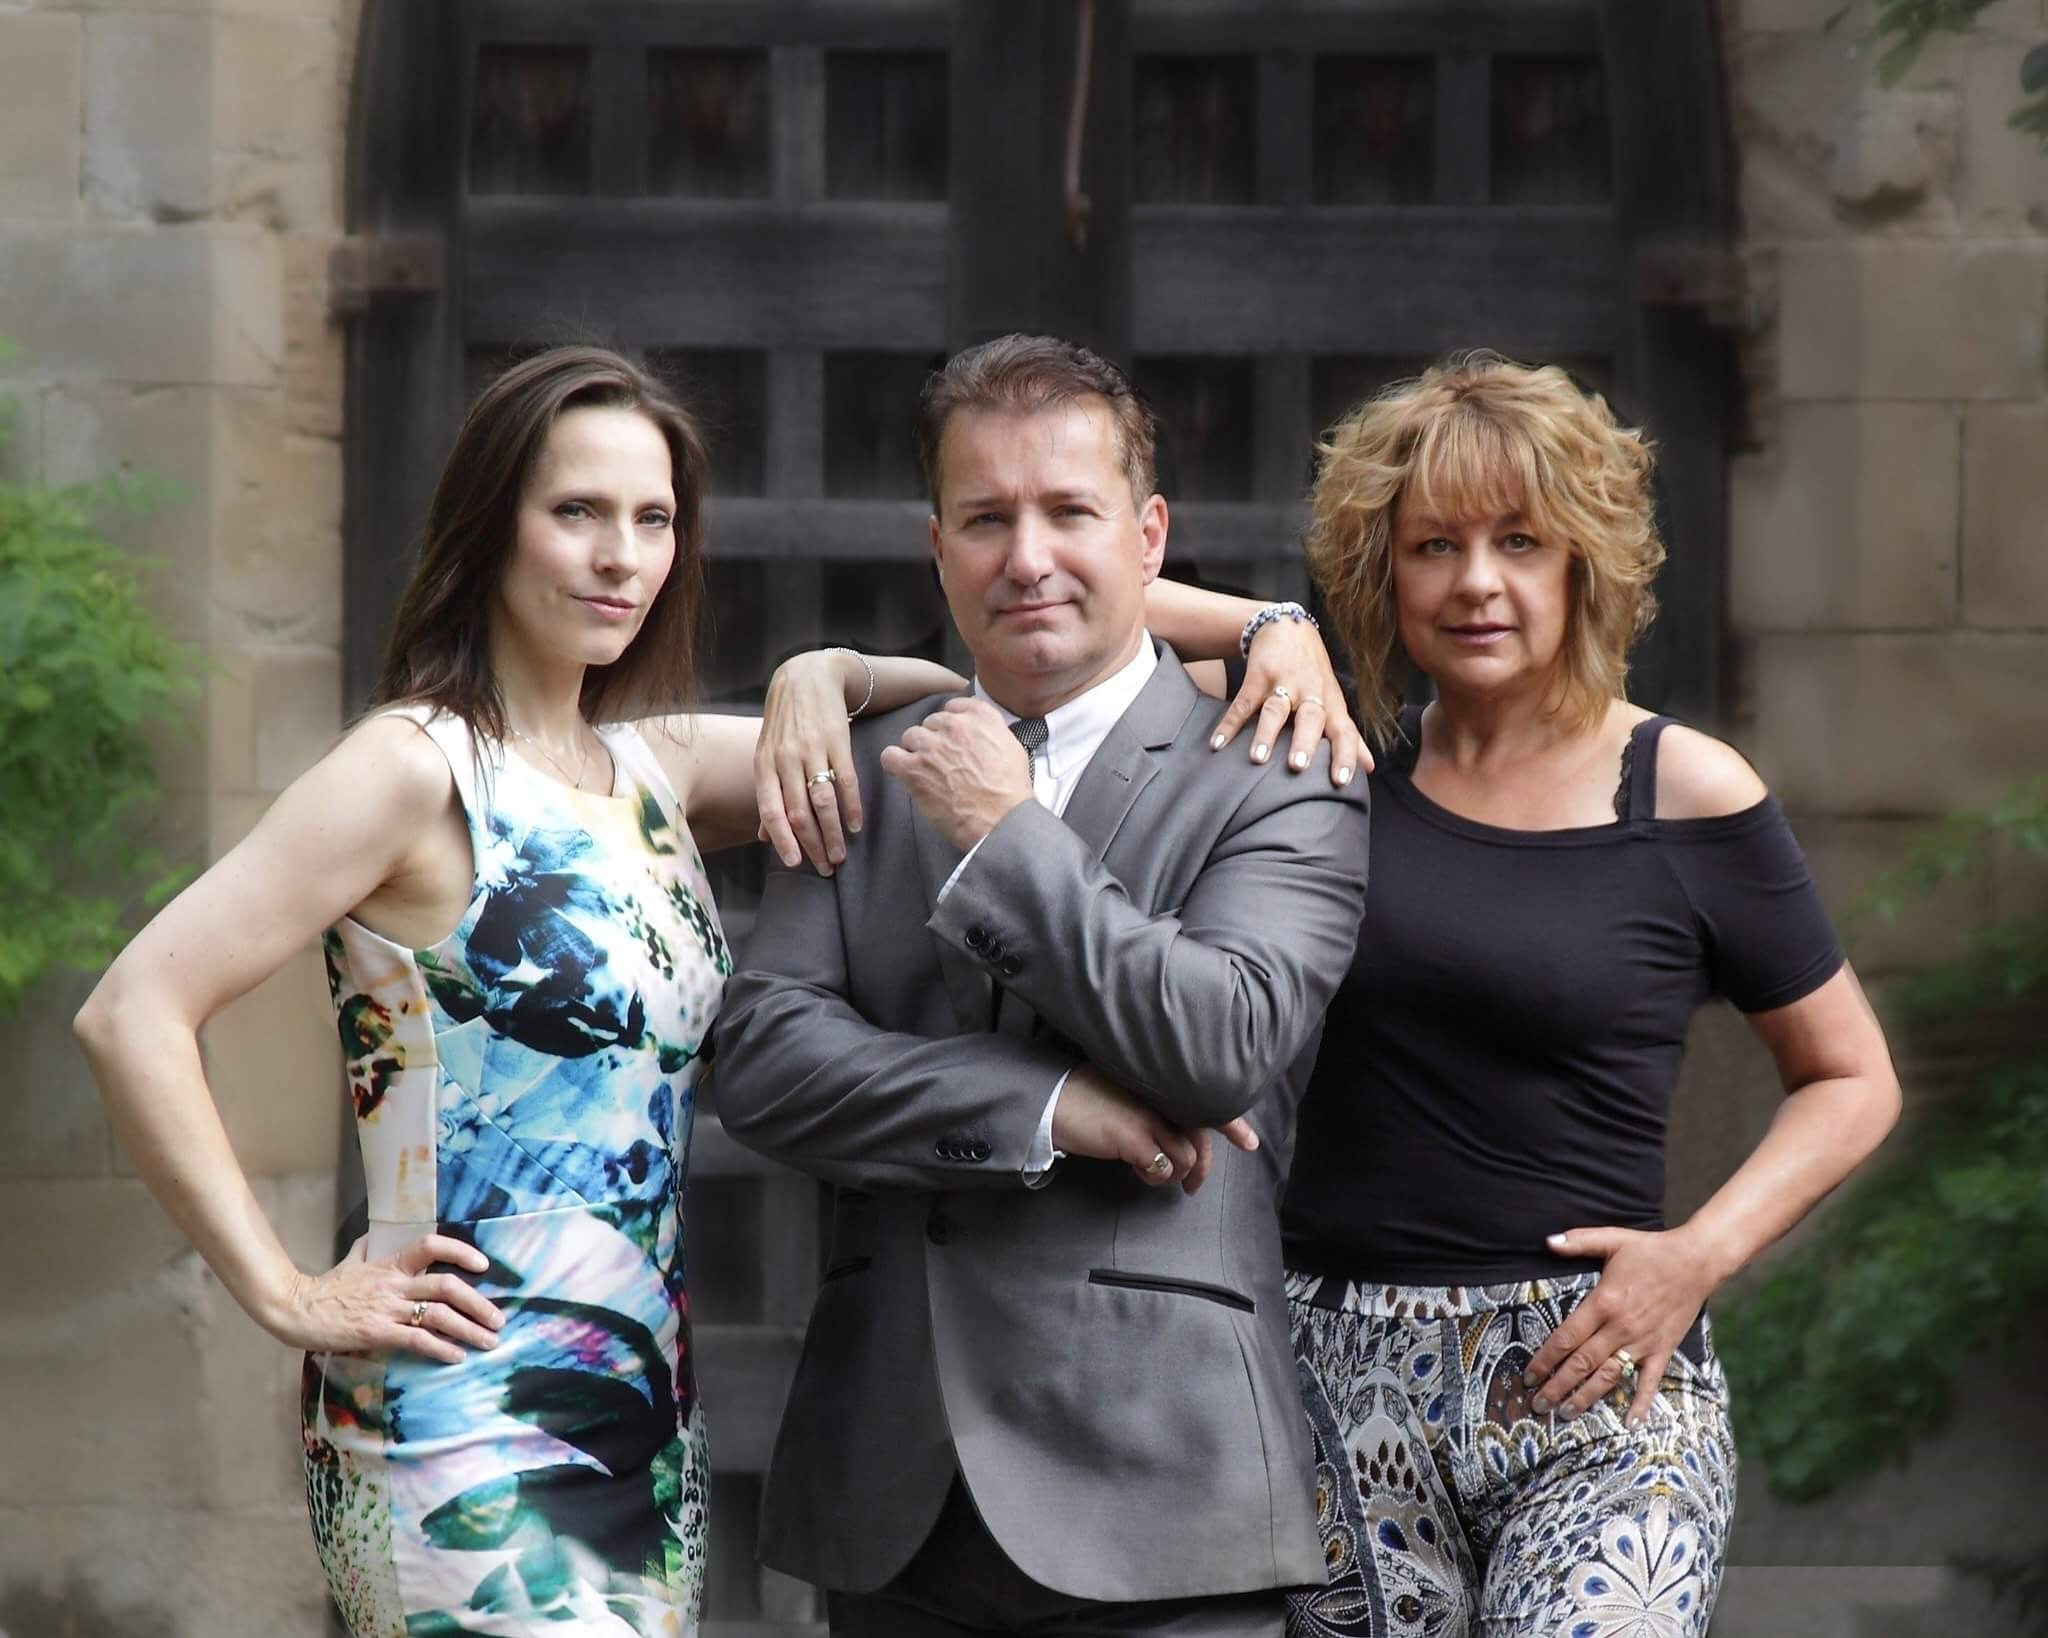 Who's Got Talent judges Claire Worboys, David Lawrence and Diane Ricci. PIC: Rachel Francis For All Seasons Photography